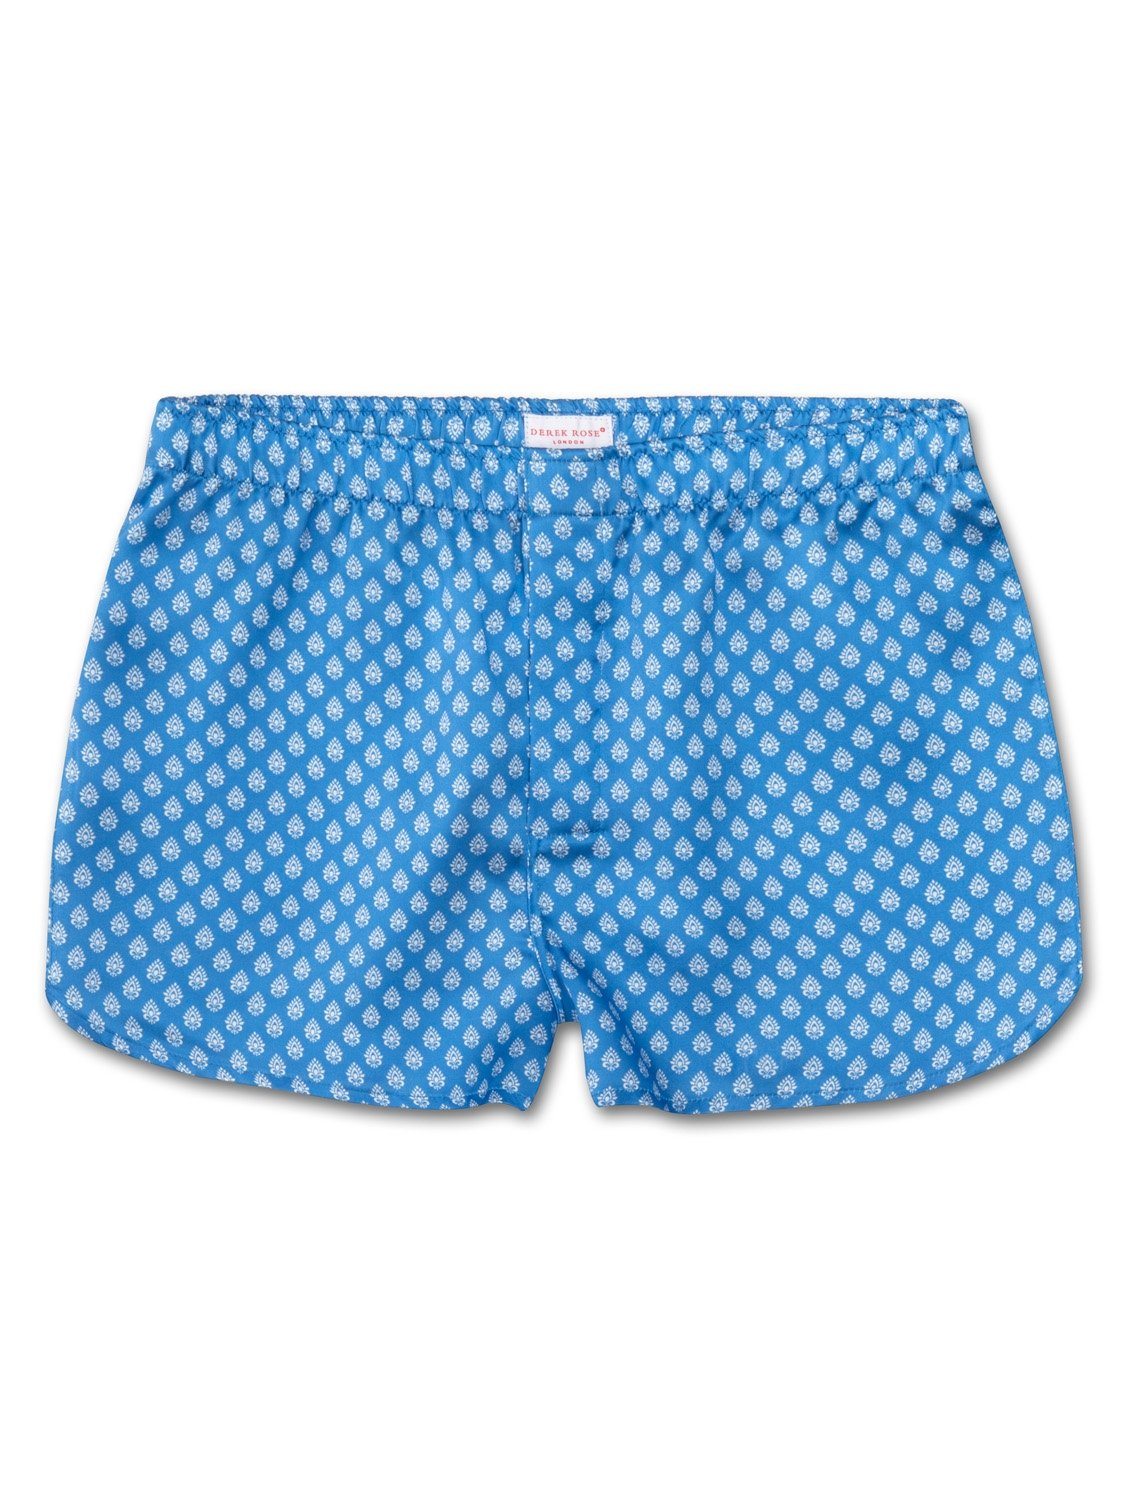 Men's Modern Fit Boxer Shorts Brindisi 20 Pure Silk Satin Blue